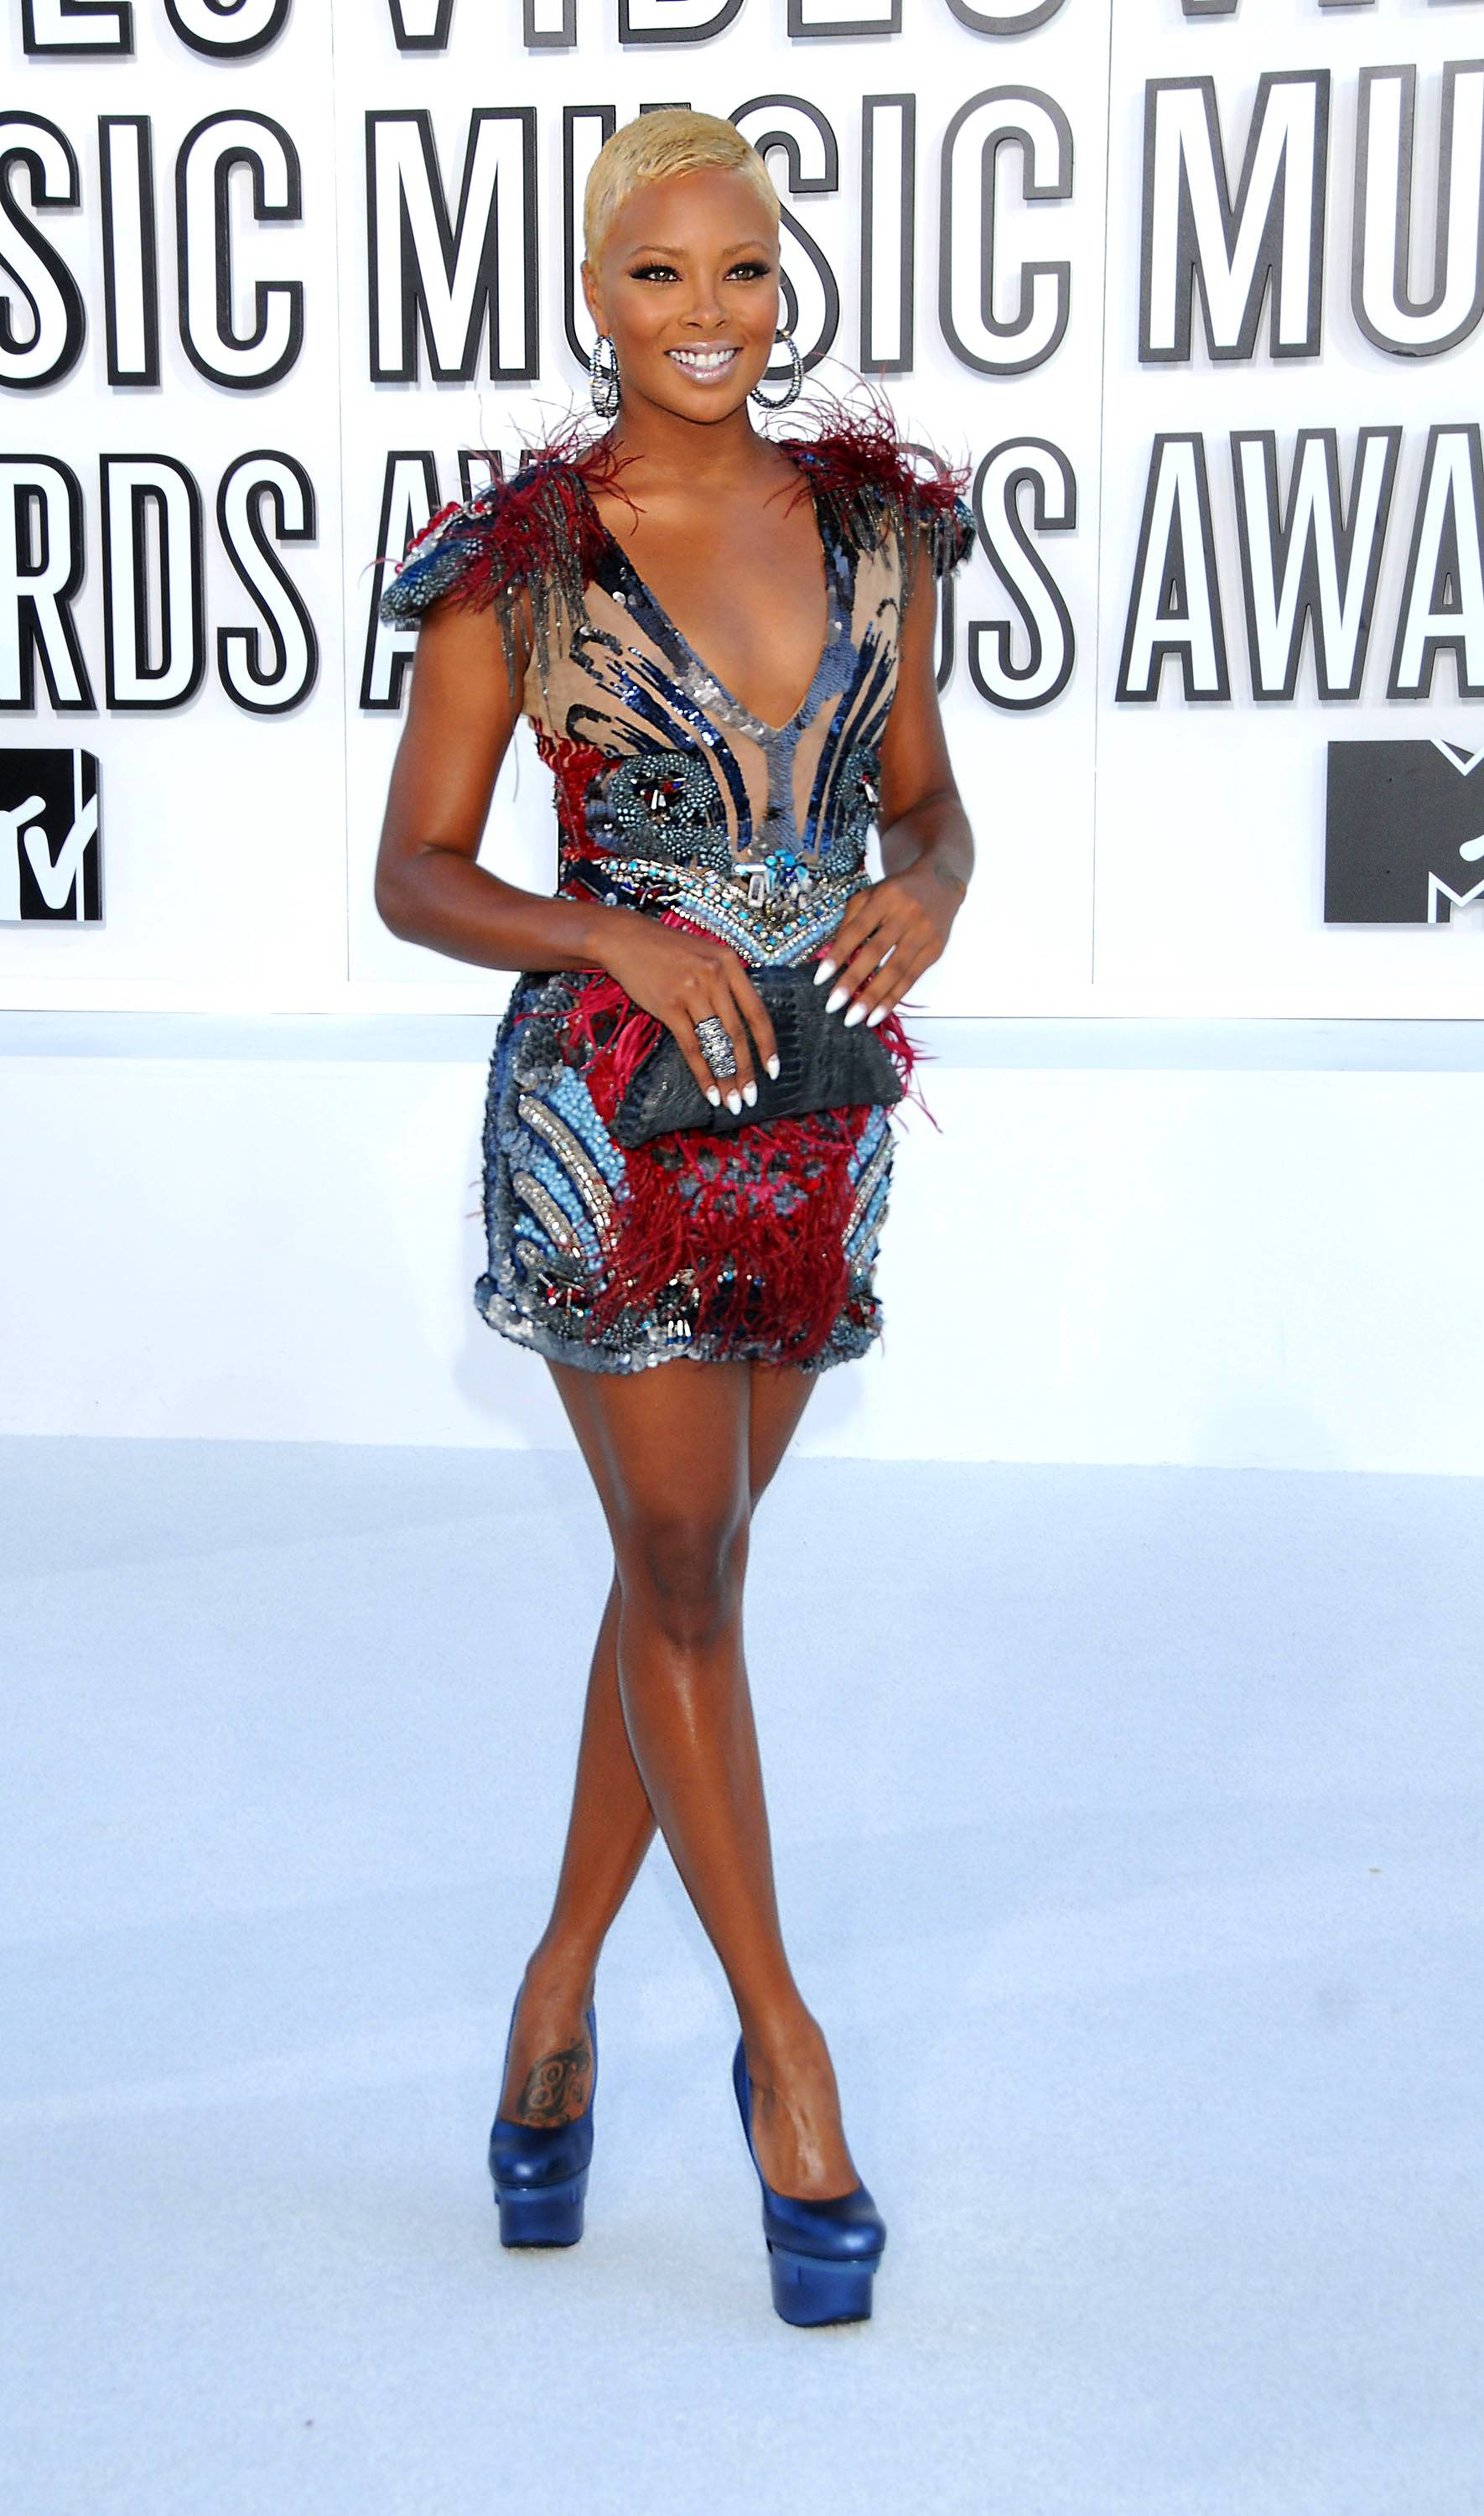 Eva Pigford - This Ford model gained recognition during the thrid cycle of America's Next Top Model. She has since entered the entertainment industry with roles in The Young and the Restless, Tyler Perry's House of Payne and Smallville.(Photo: Gregg DeGuire/PictureGroup)